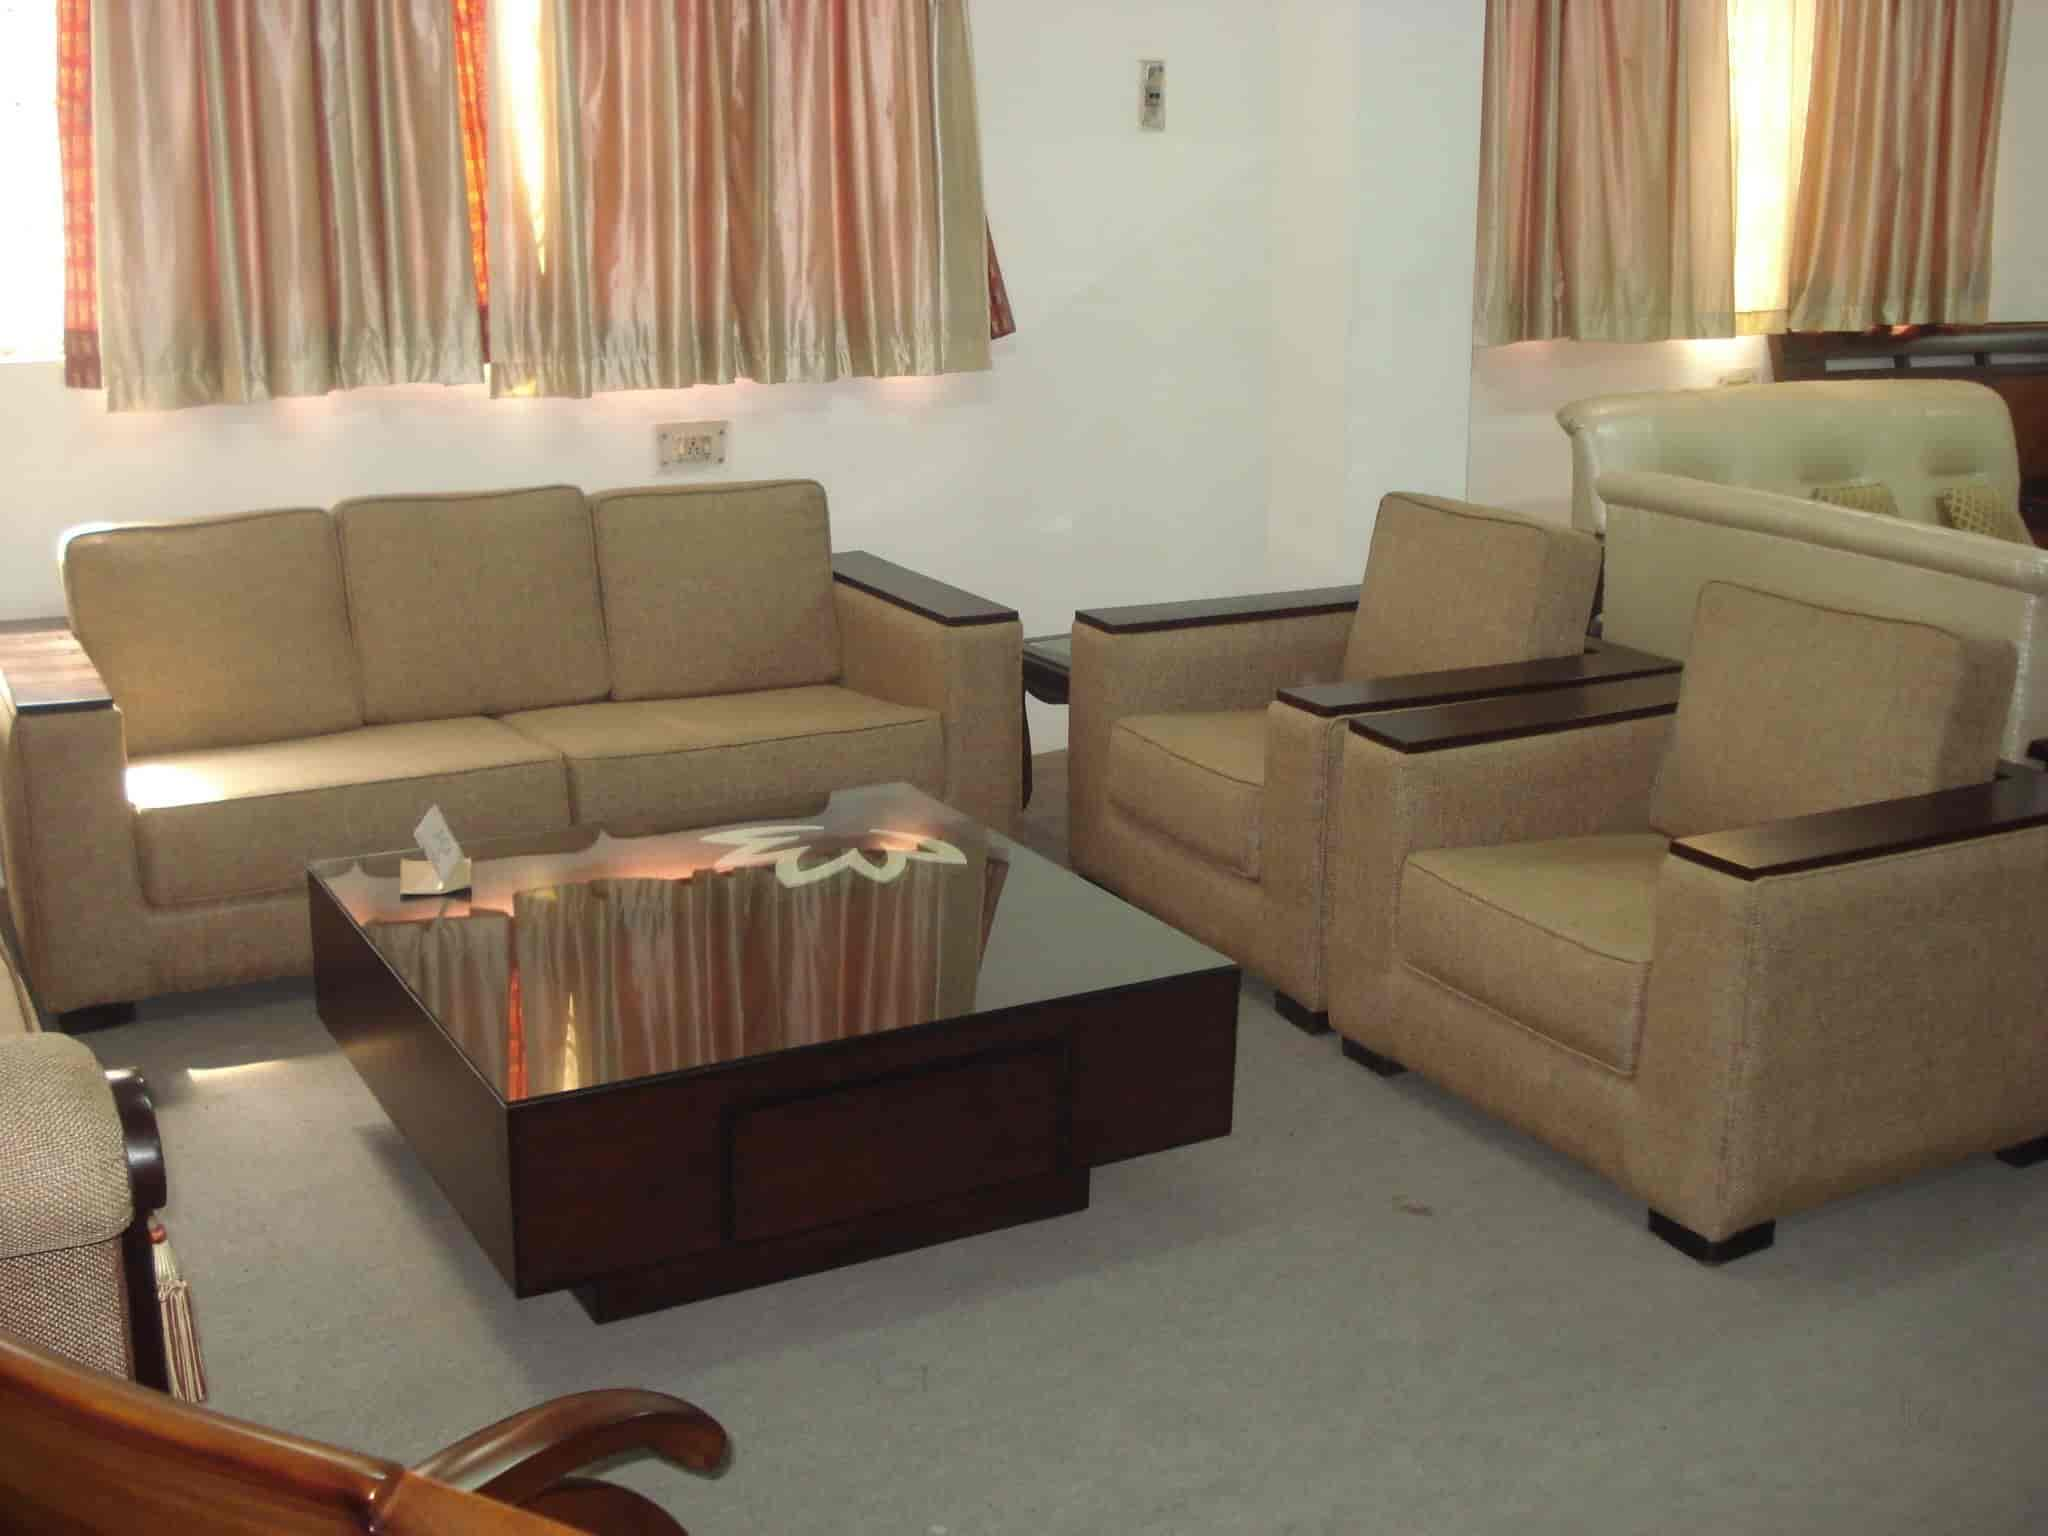 Awesome Sofa Factory, Seethammapeta   Sofa Set Repair U0026 Services In Visakhapatnam    Justdial